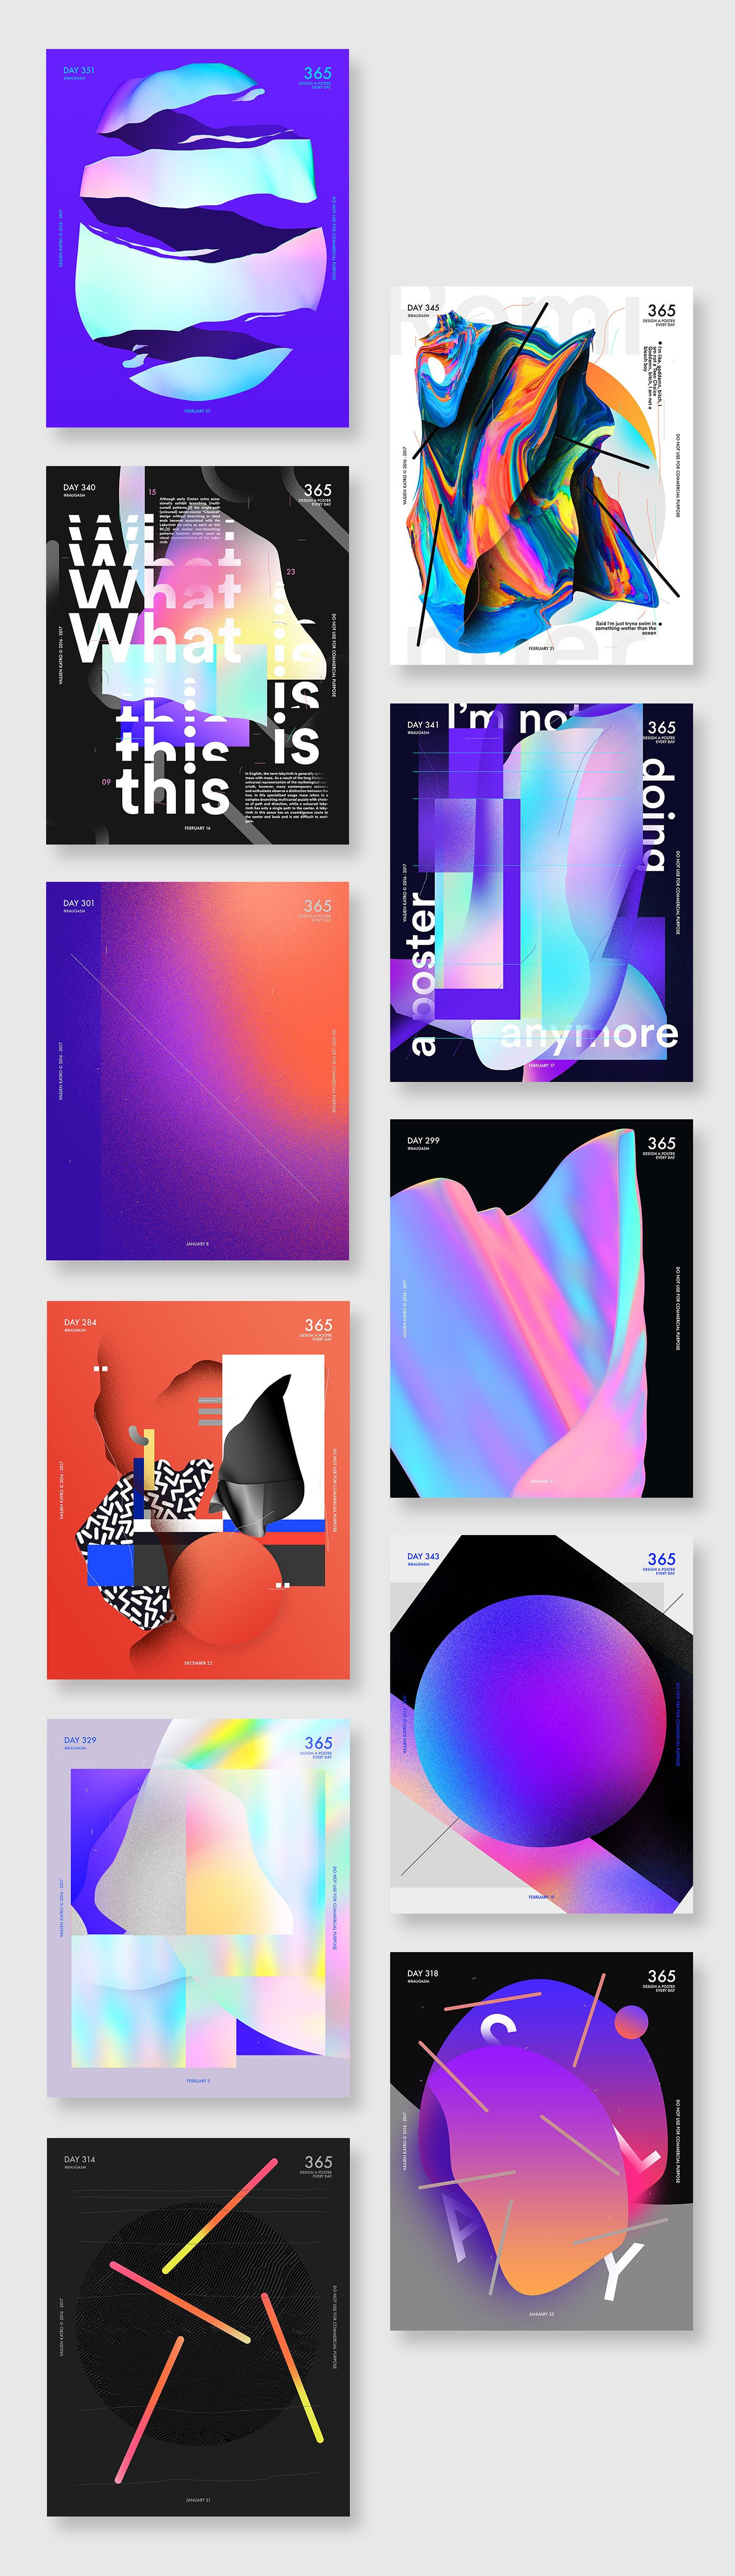 Baugasm - 365 Posters on Behance